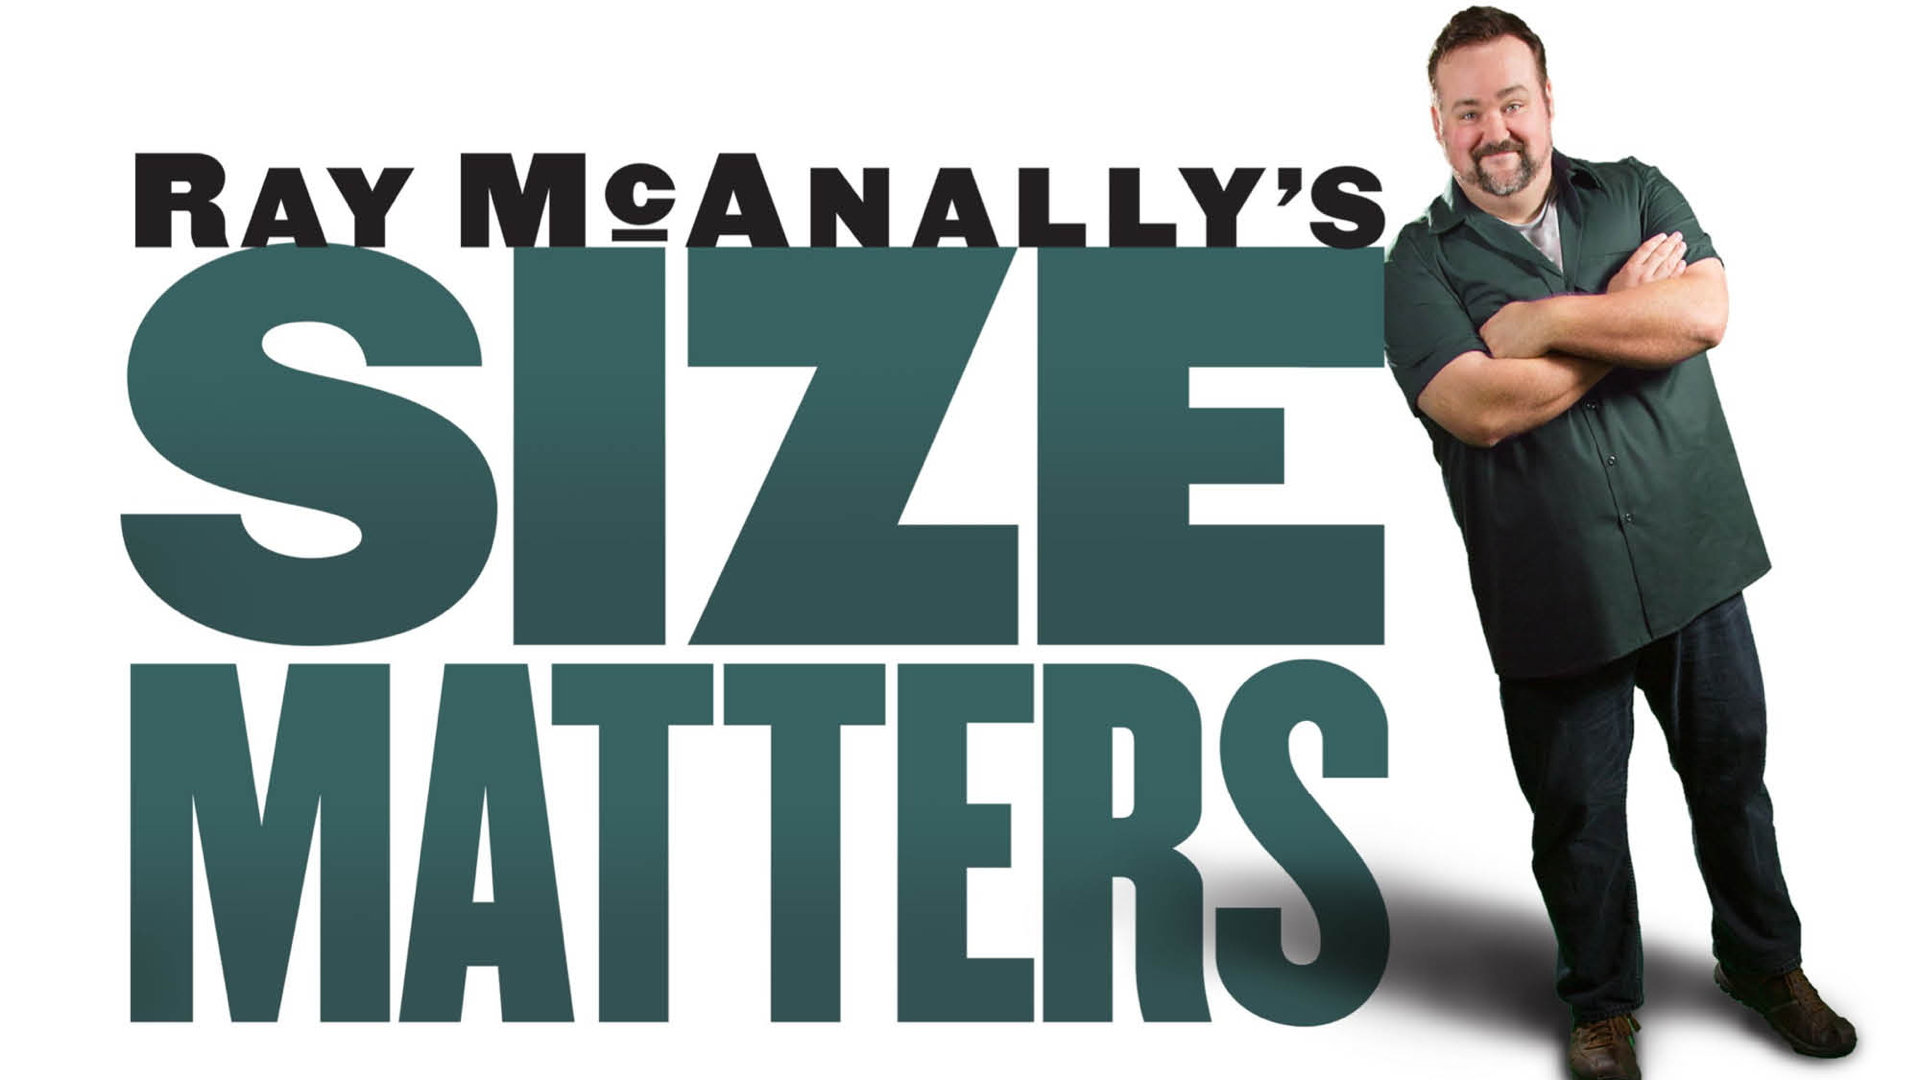 Ray McAnally's Size Matters